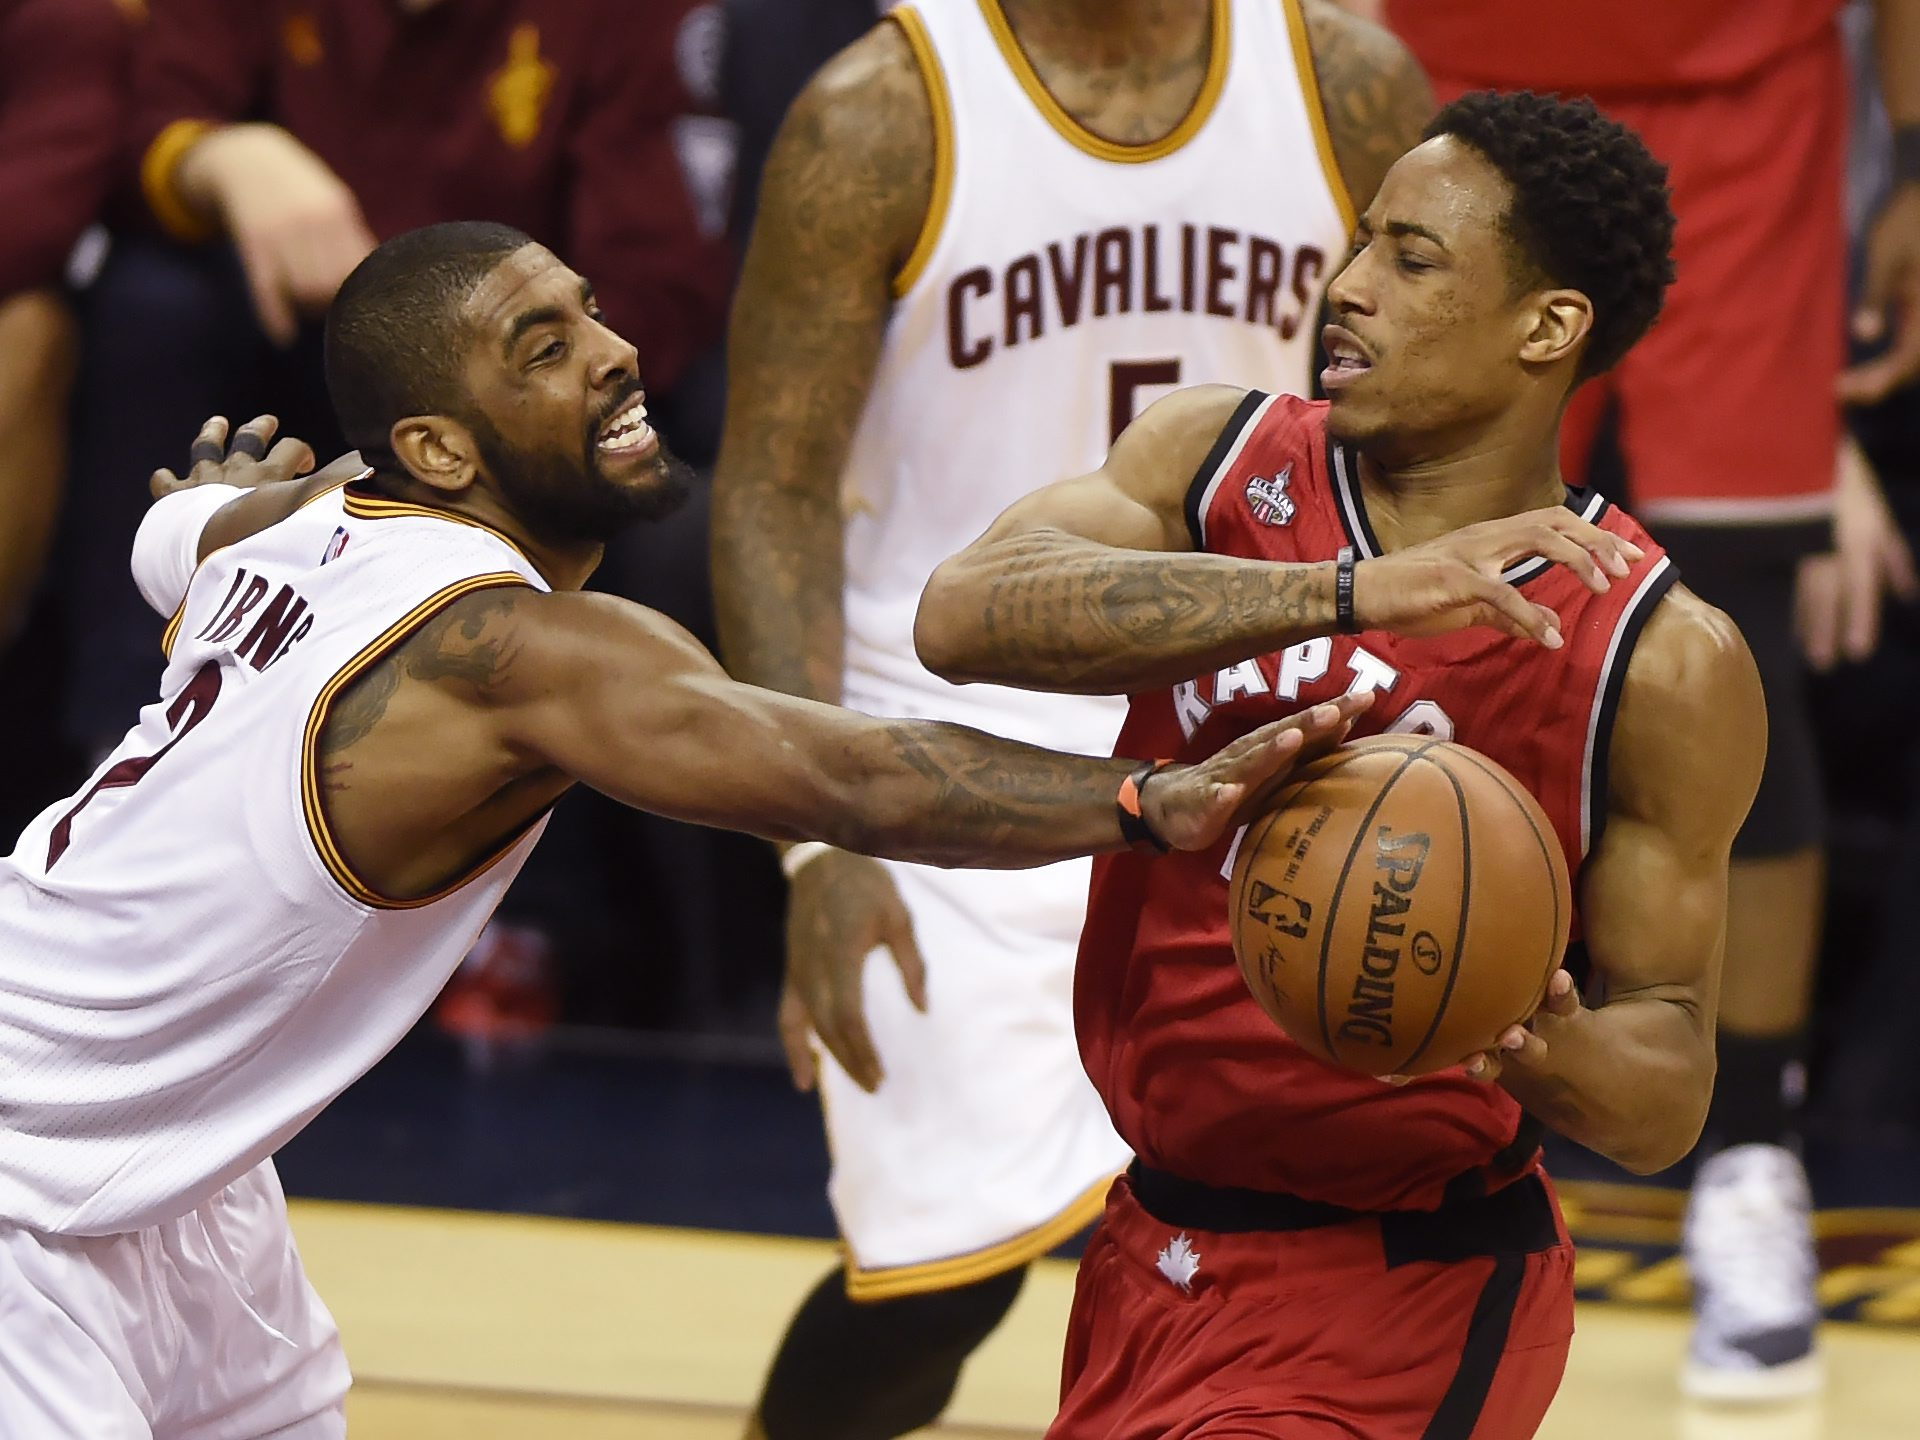 Cleveland Cavaliers vs. Toronto Raptors - 5/21/16 NBA Game 3 Prediction